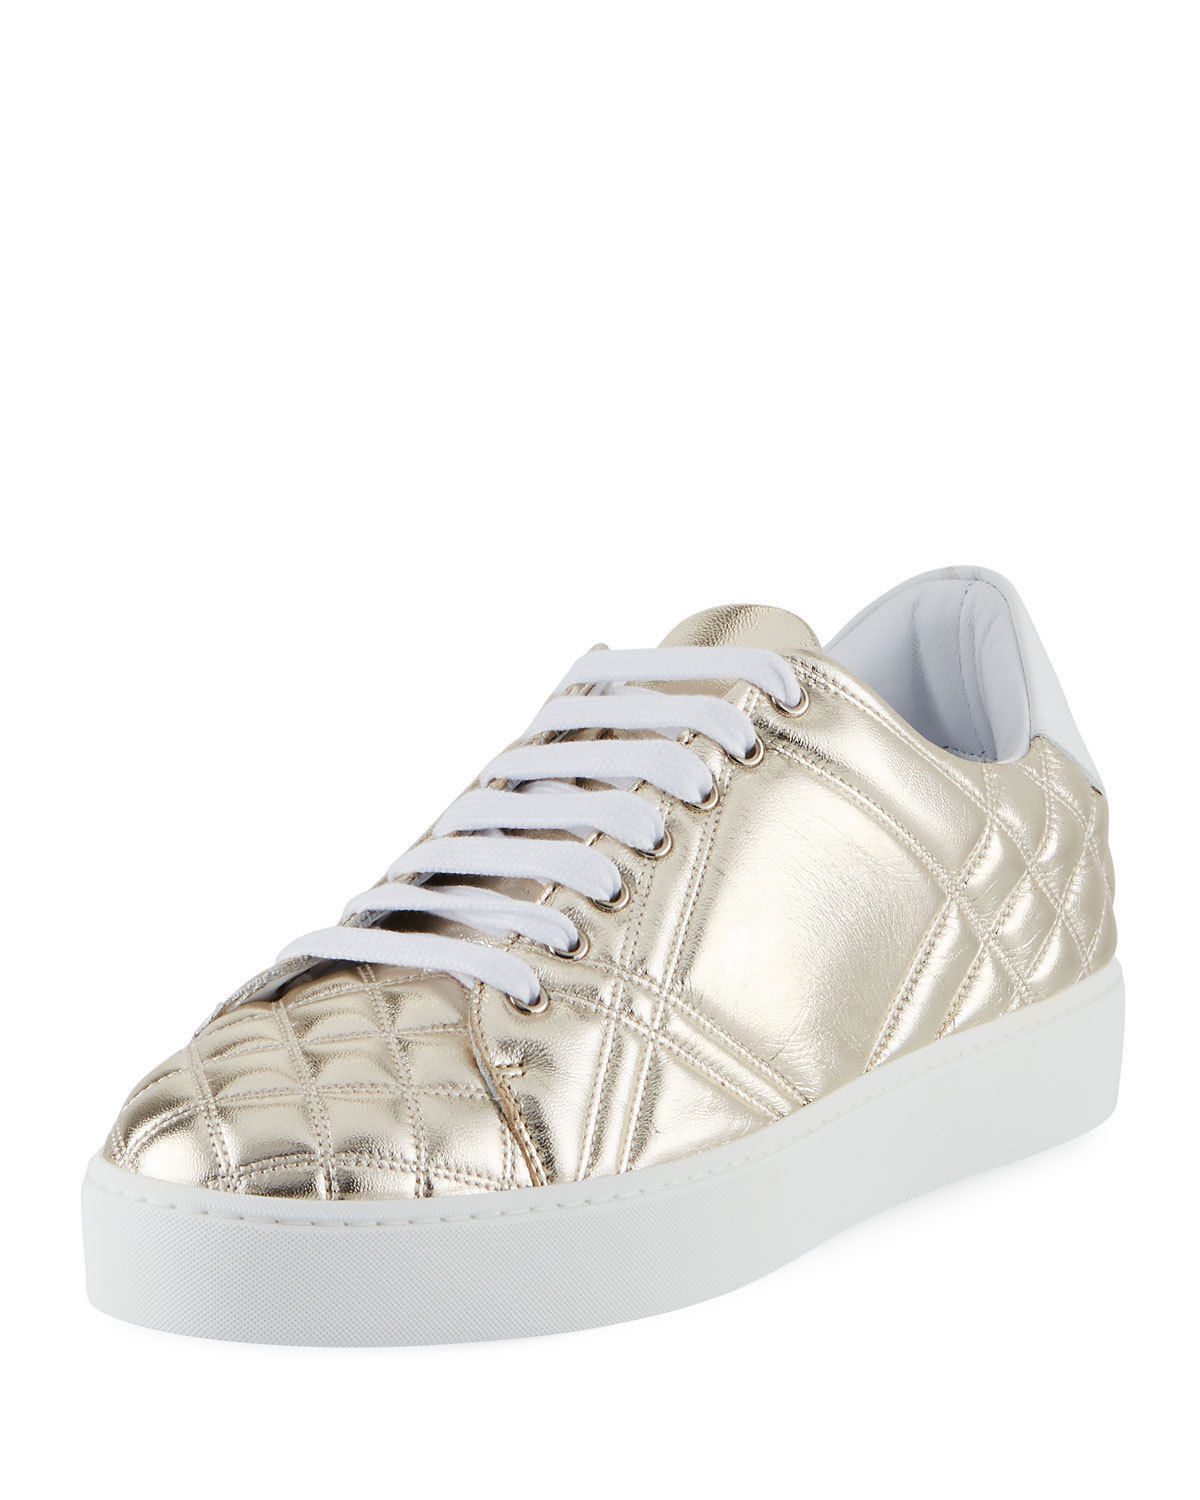 Burberry Westford Quilted Metallic Leather Low-Top Sneaker Gold Sz 40.5 $450.00 - $296.99